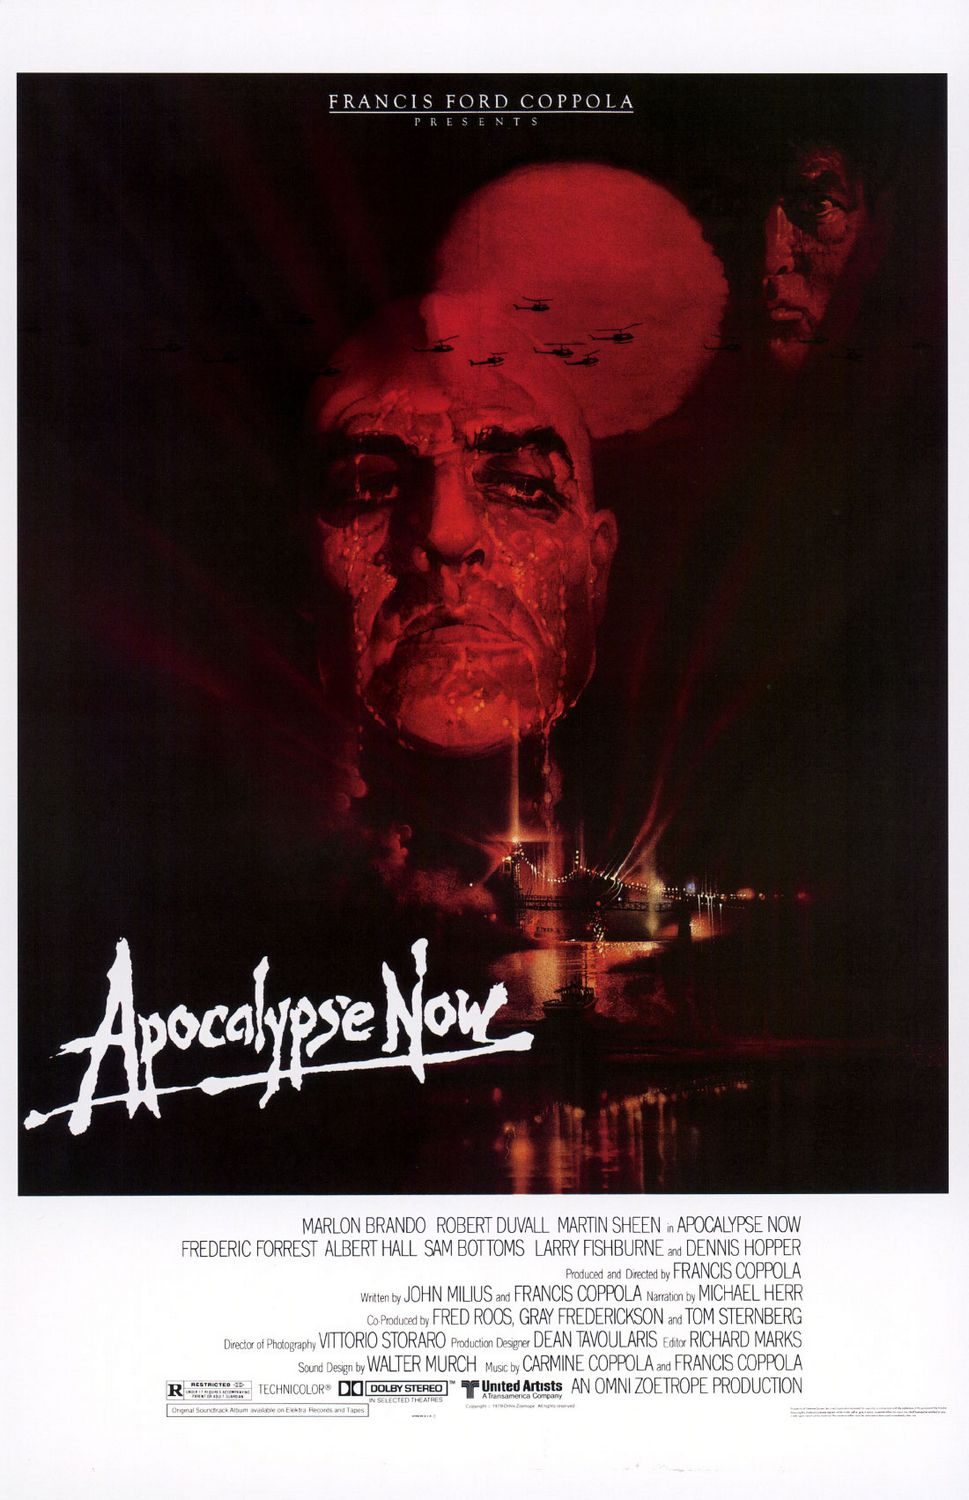 apocalypse now film techniques Types of film cuts soloboxer loading apocalypse now belongs to lionsgate steven spielberg's techniques and themes - duration.